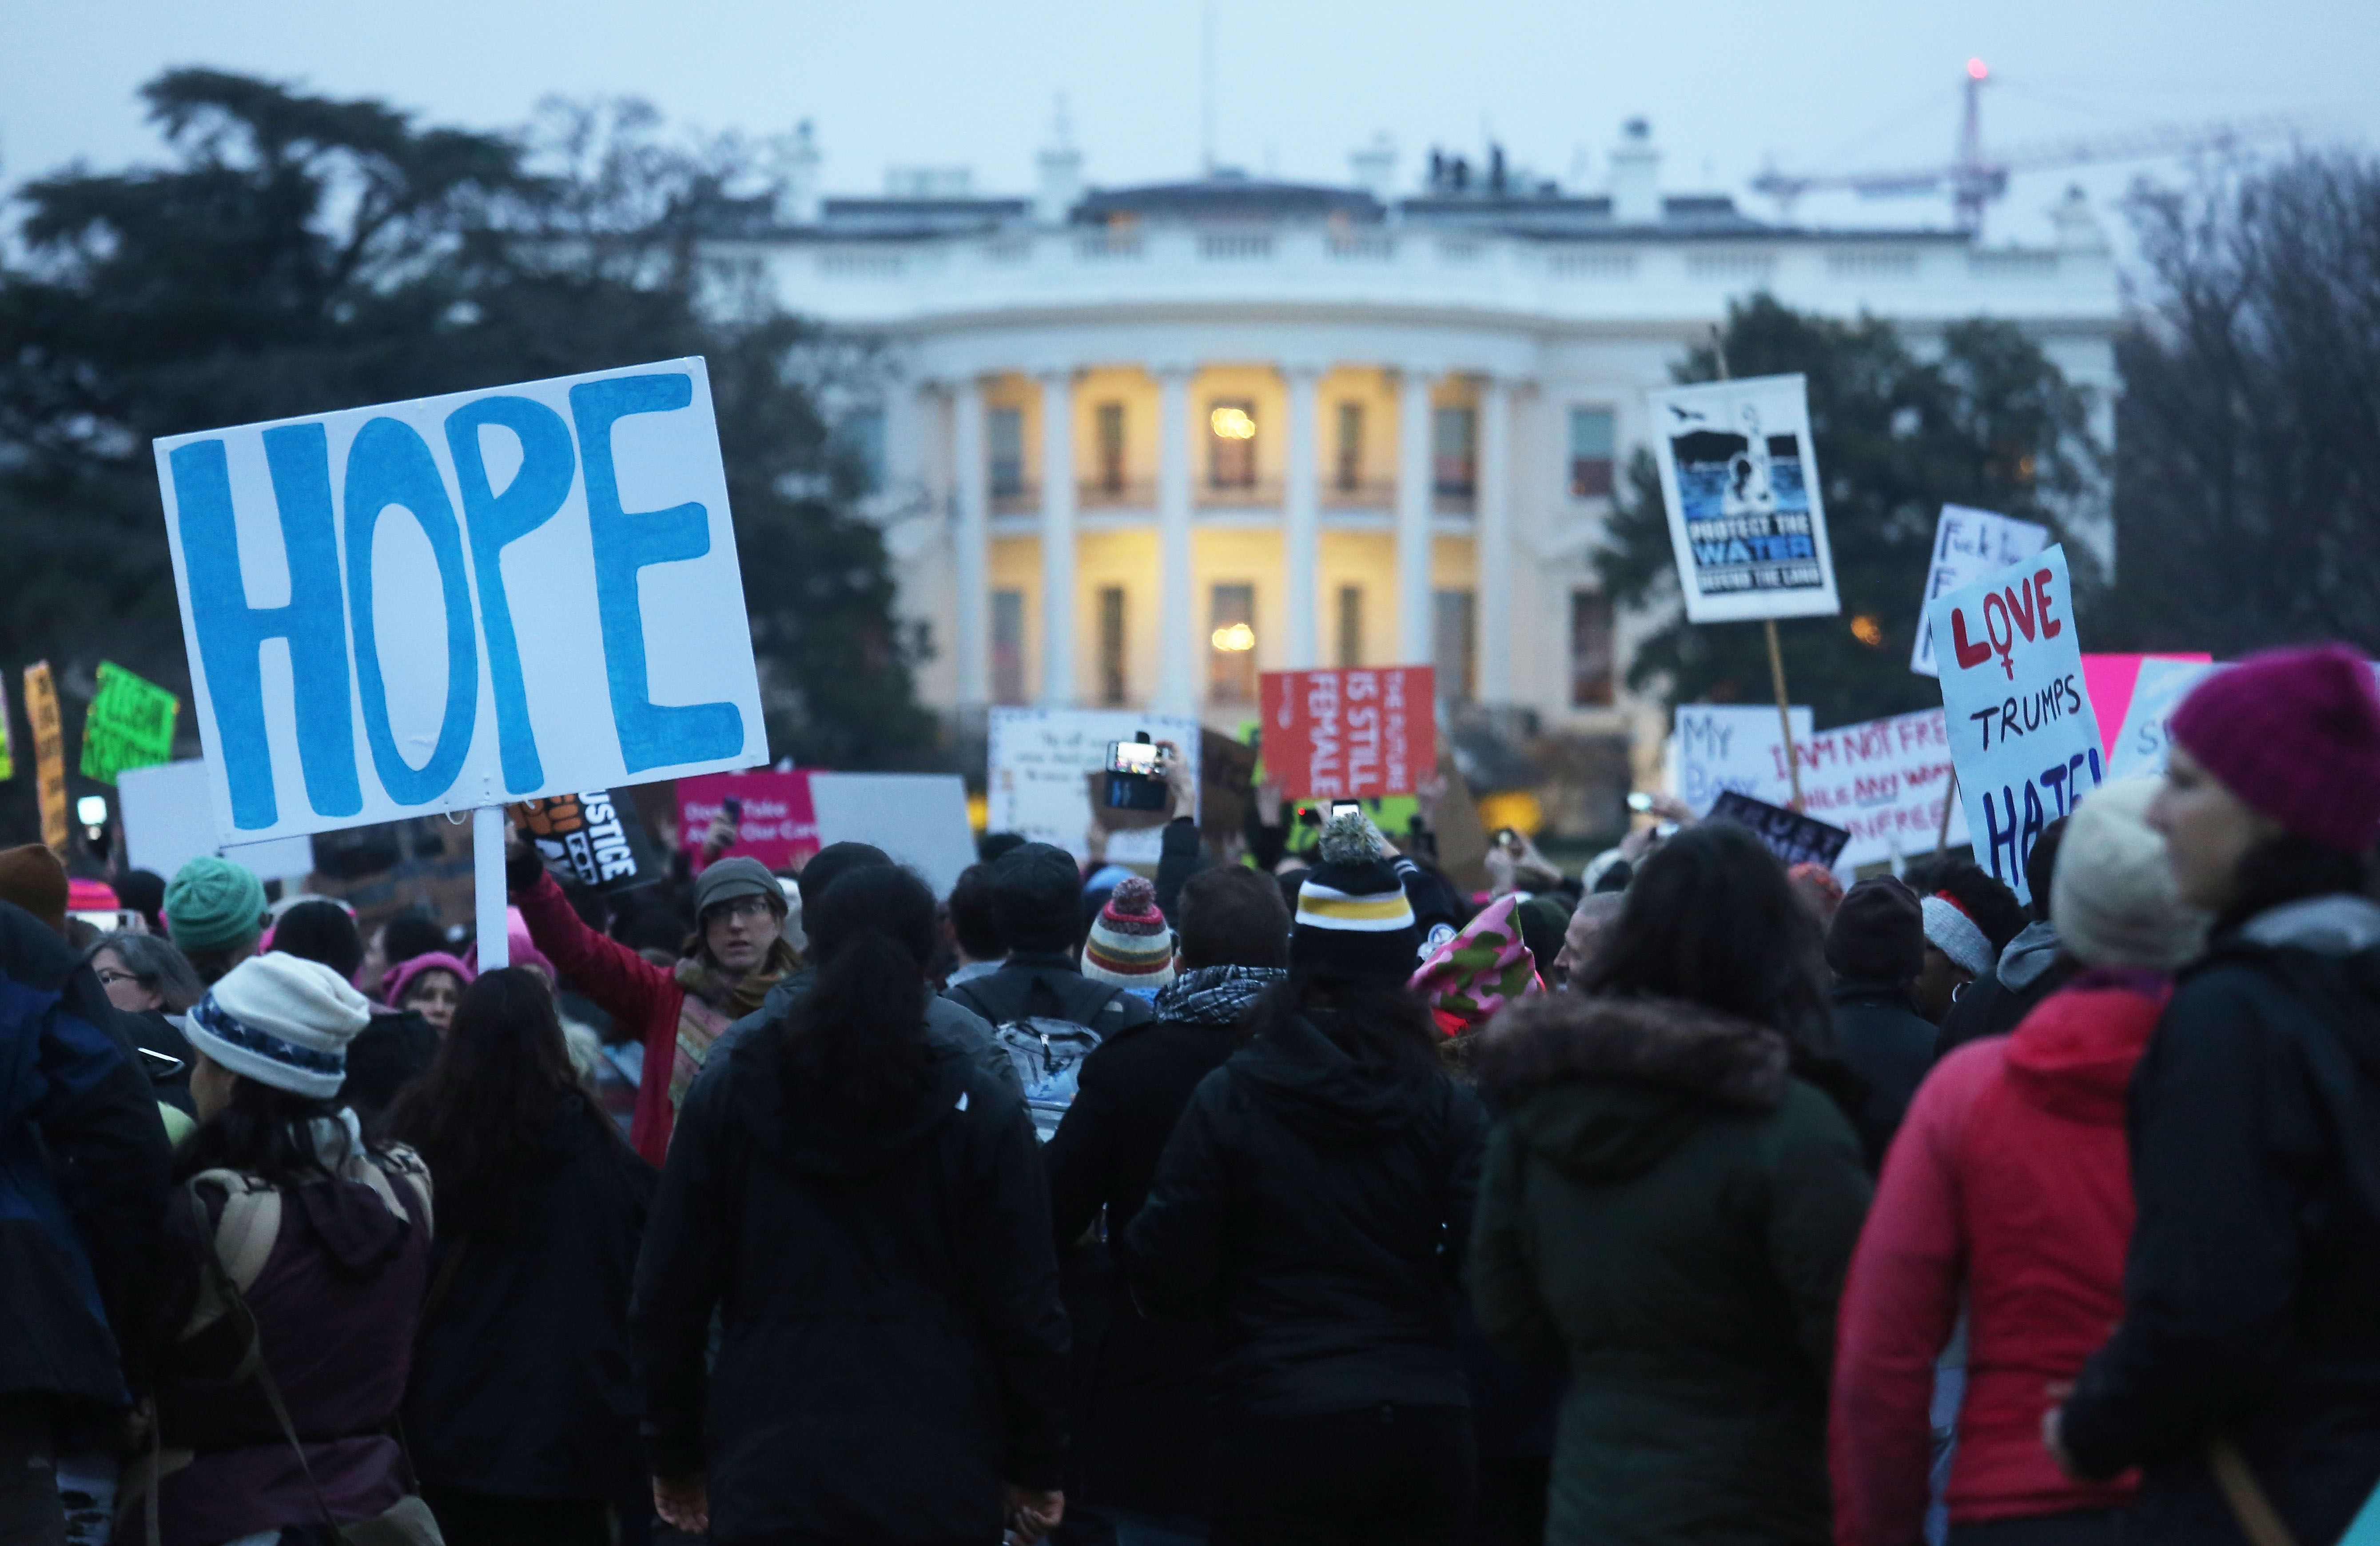 The National Archives Removed Anti-Trump Messages From a Photo of the Women's March